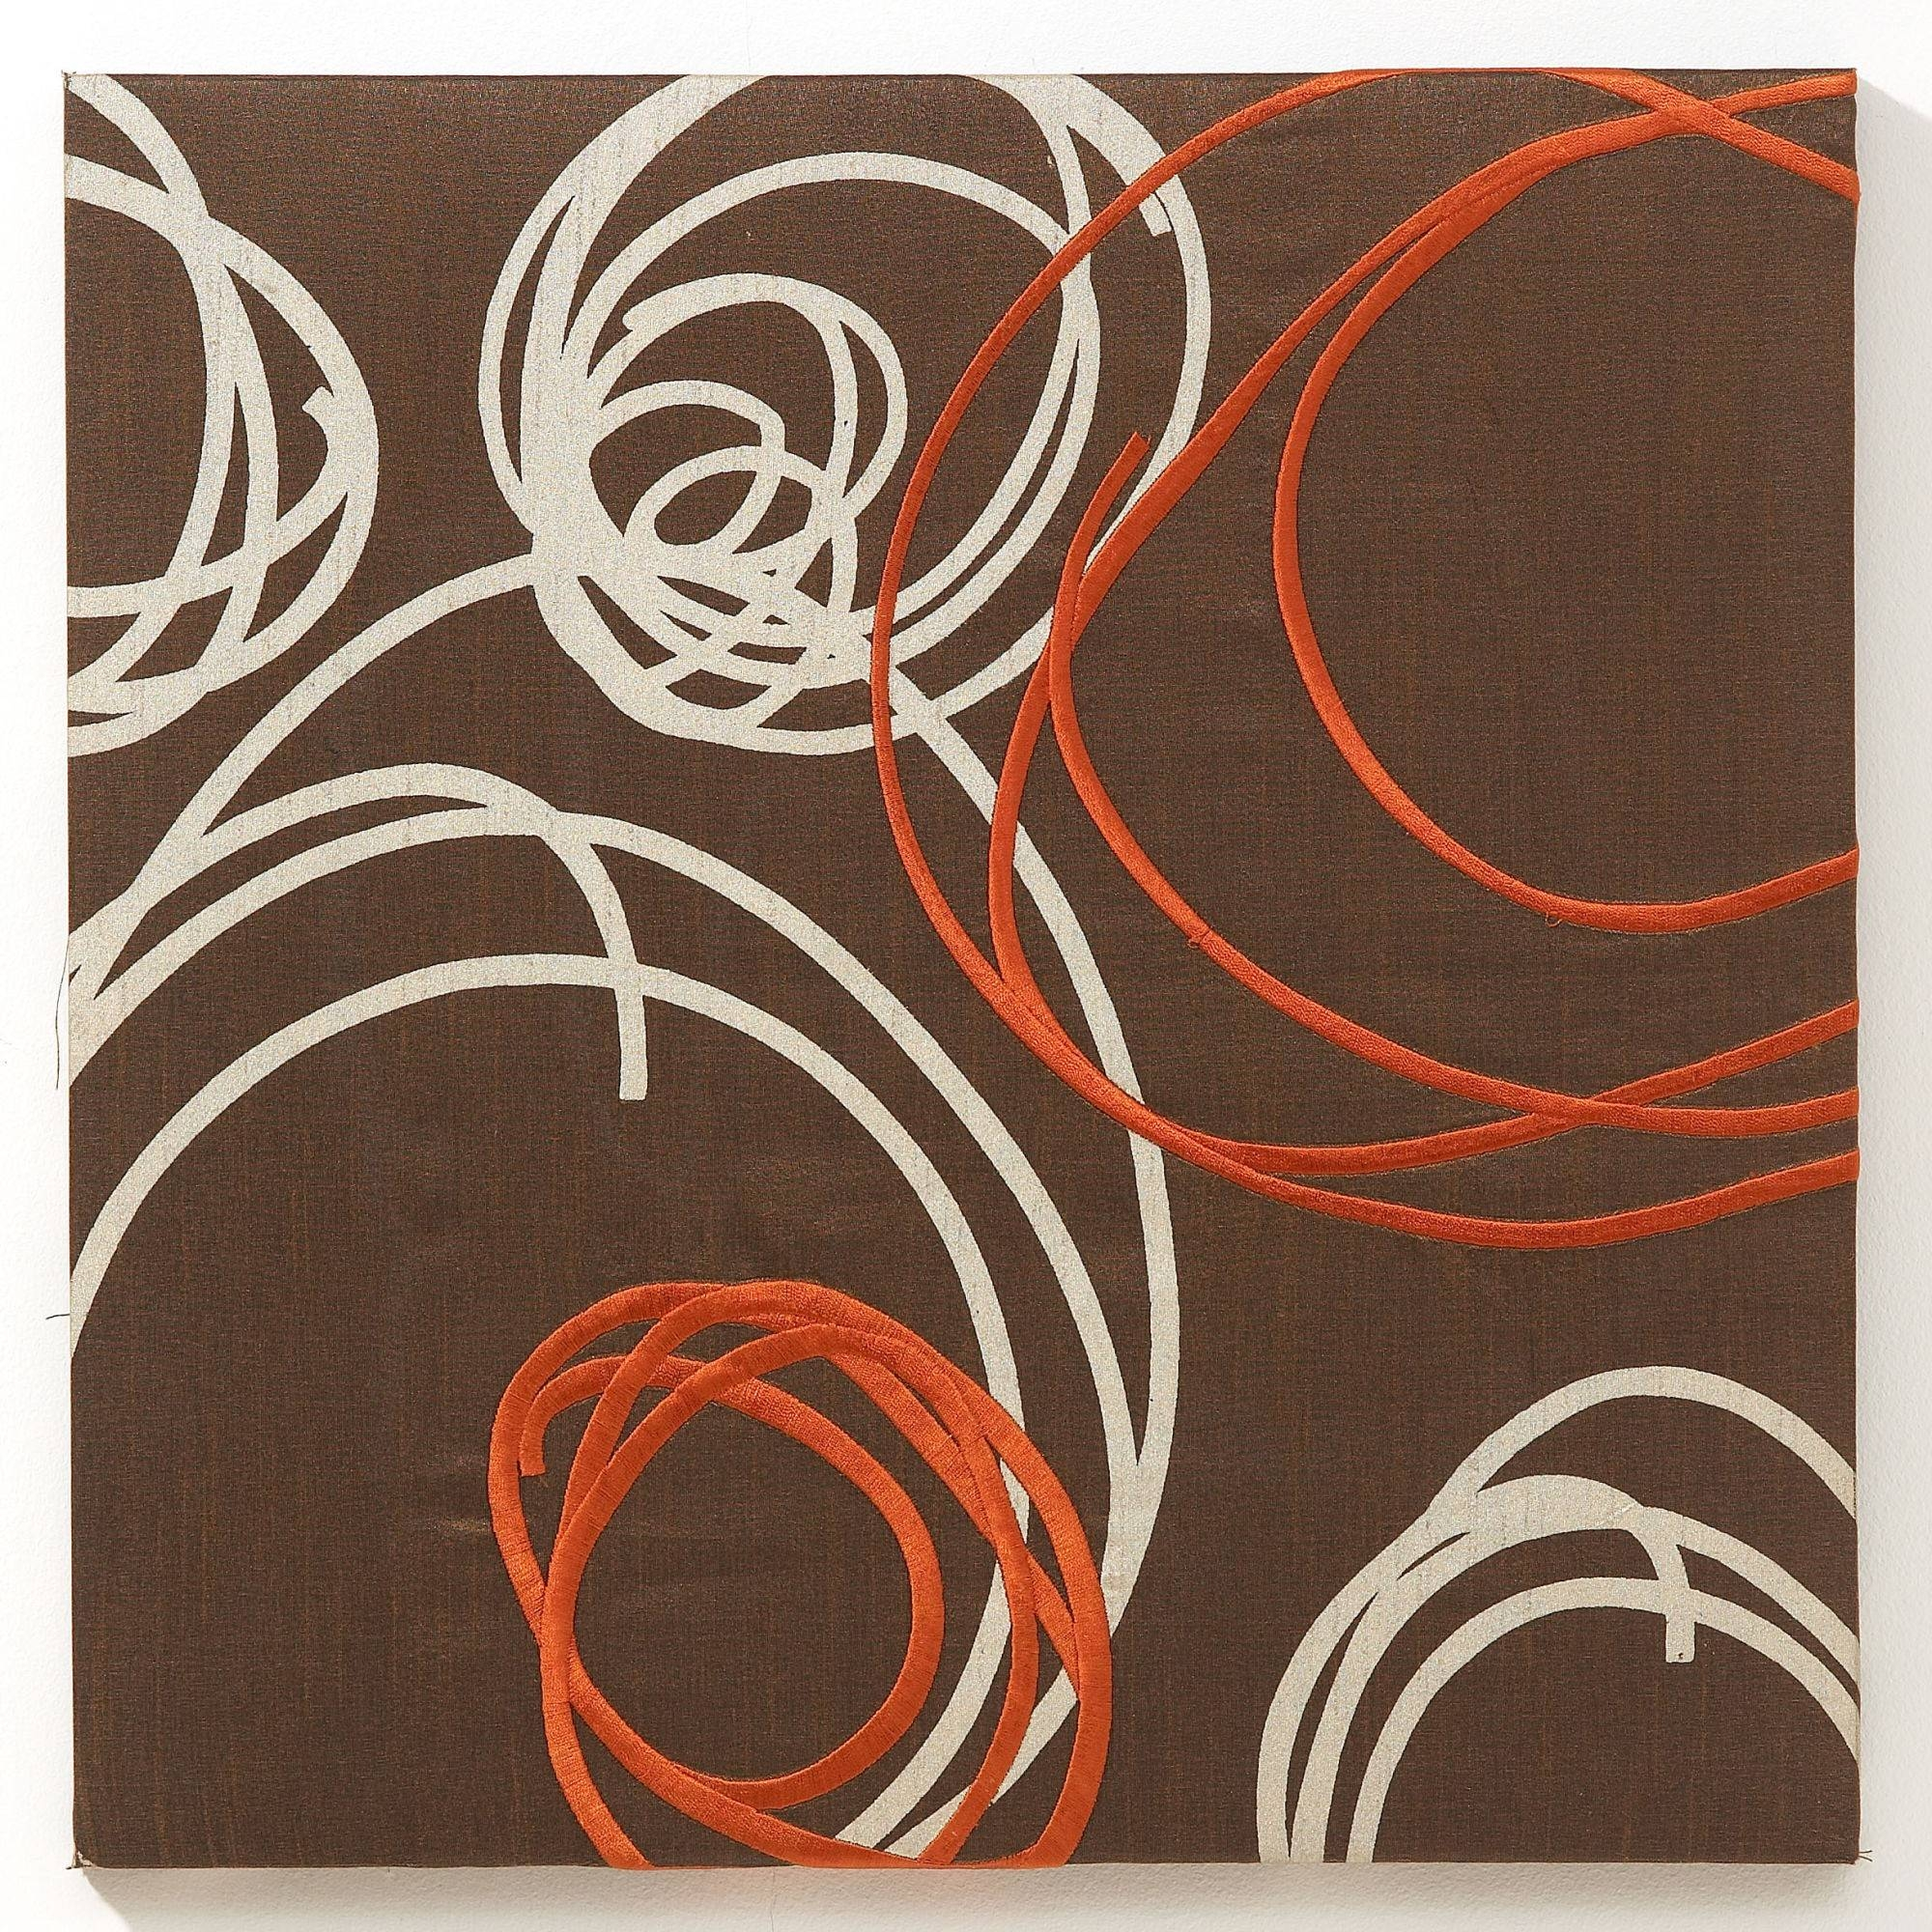 Graham & Brown Orange Silk Swirl Fabric Wall Art – 41711 Intended For Newest Graham & Brown Wall Art (View 6 of 20)